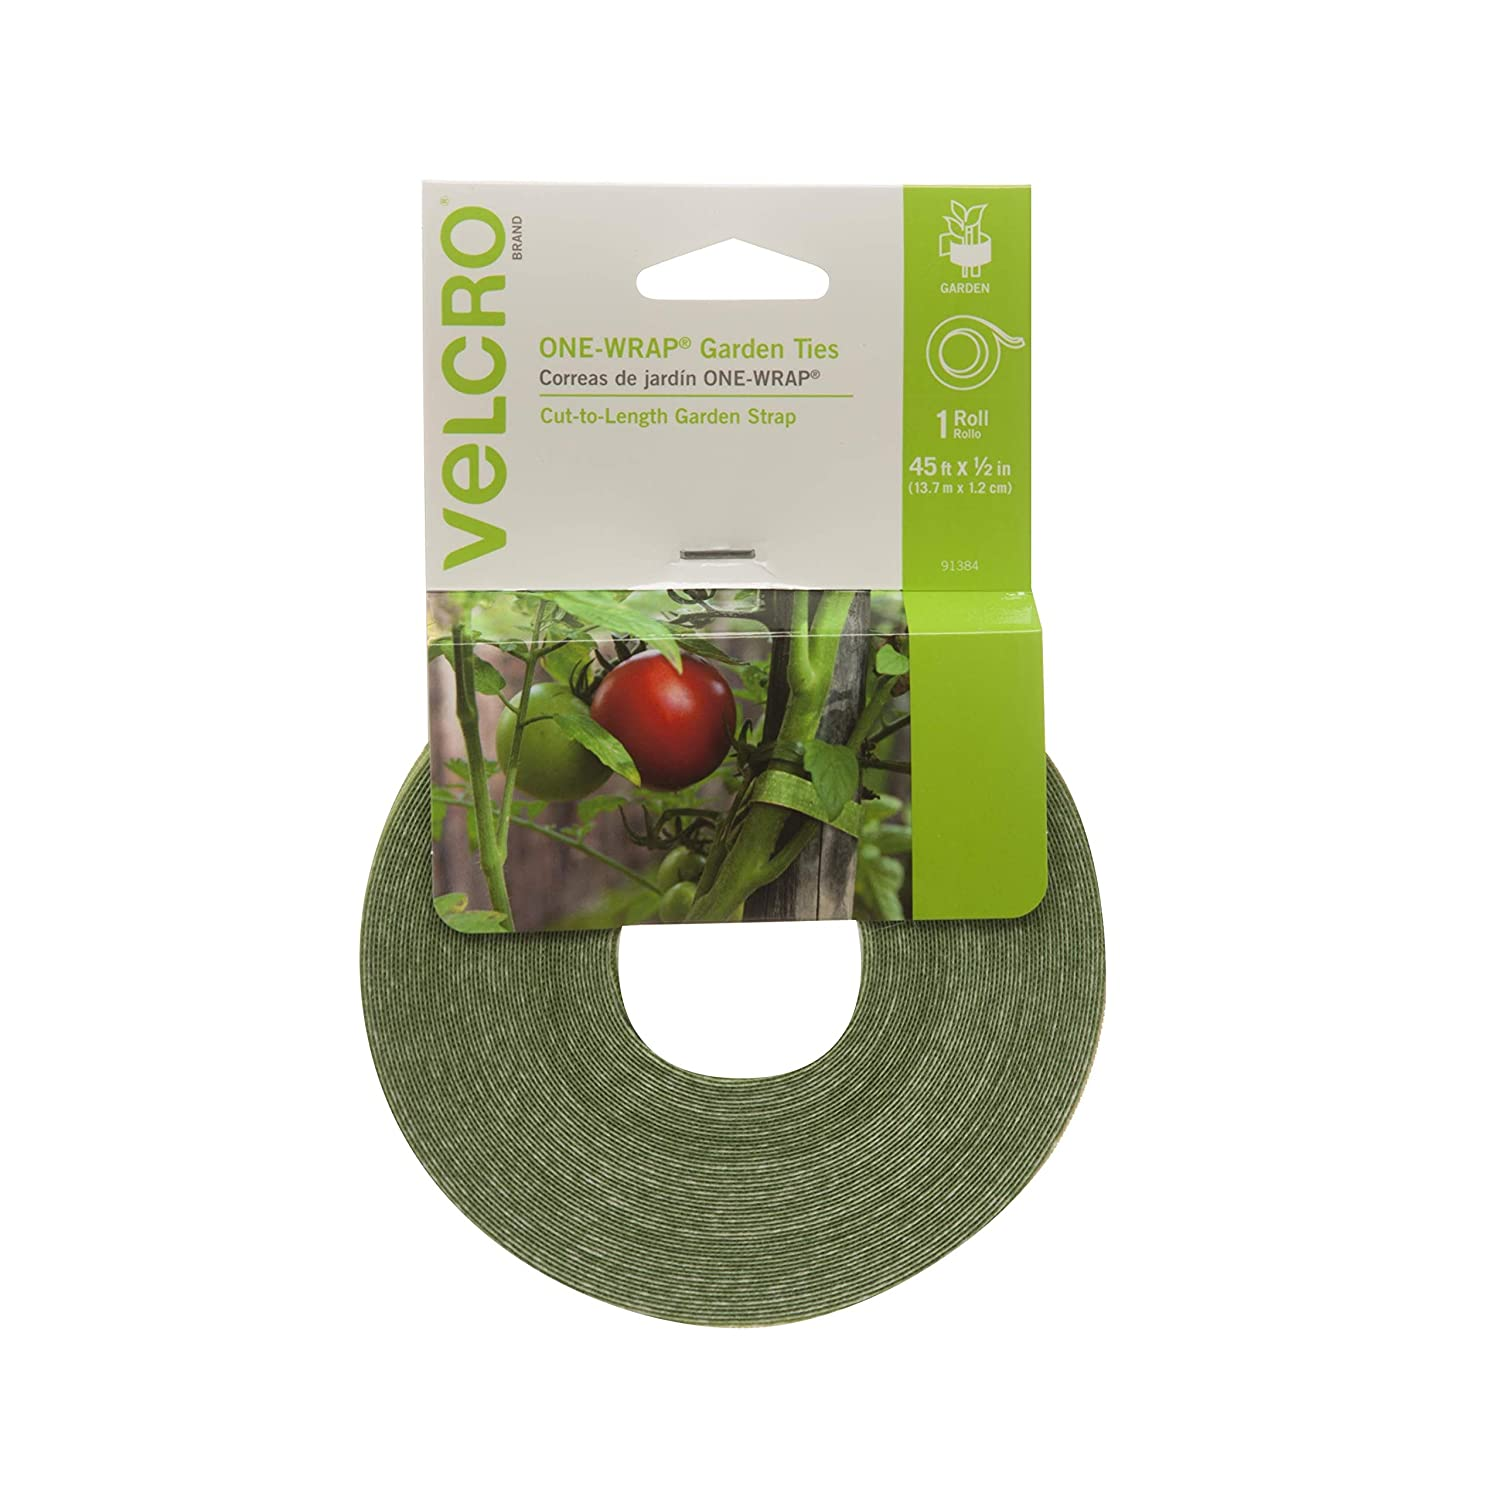 VELCRO Brand 91384 ONE-WRAP Supports for Effective Growing | Strong Gardening Grips are Reusable and Adjustable Gentle Plant Ties, 45 ft x 1/2 in Green